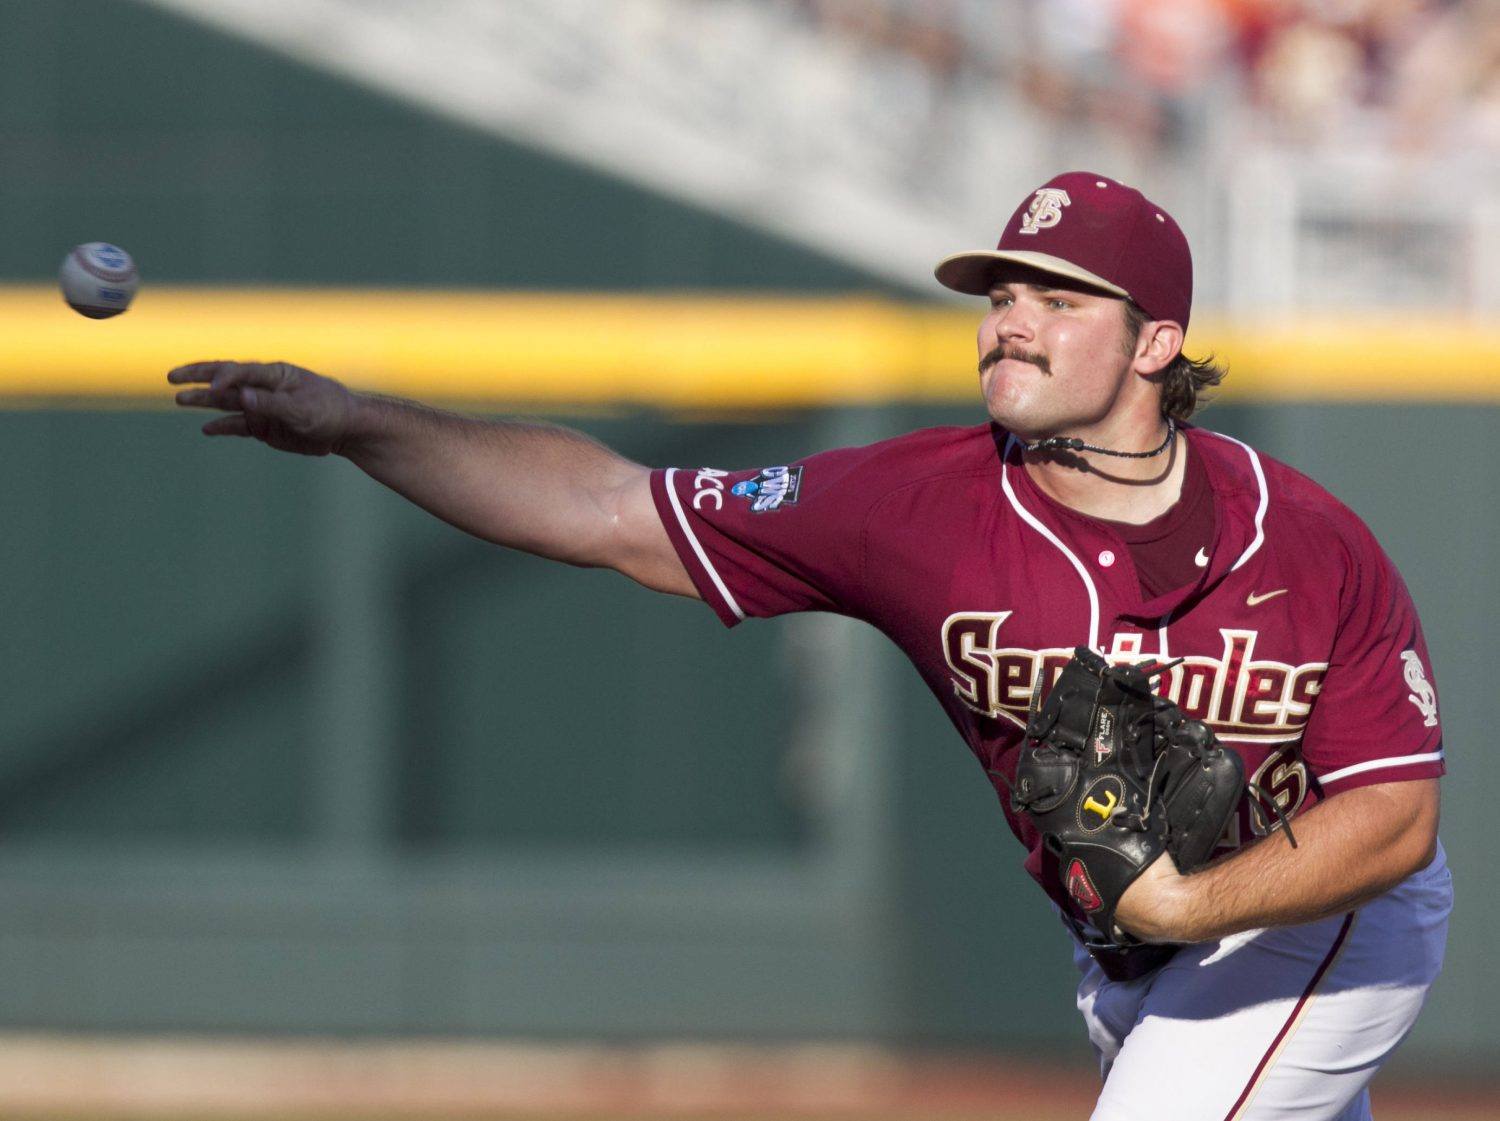 Florida State starting pitcher Scott Sitz delivers against UCLA in the first inning. (AP Photo/Nati Harnik)